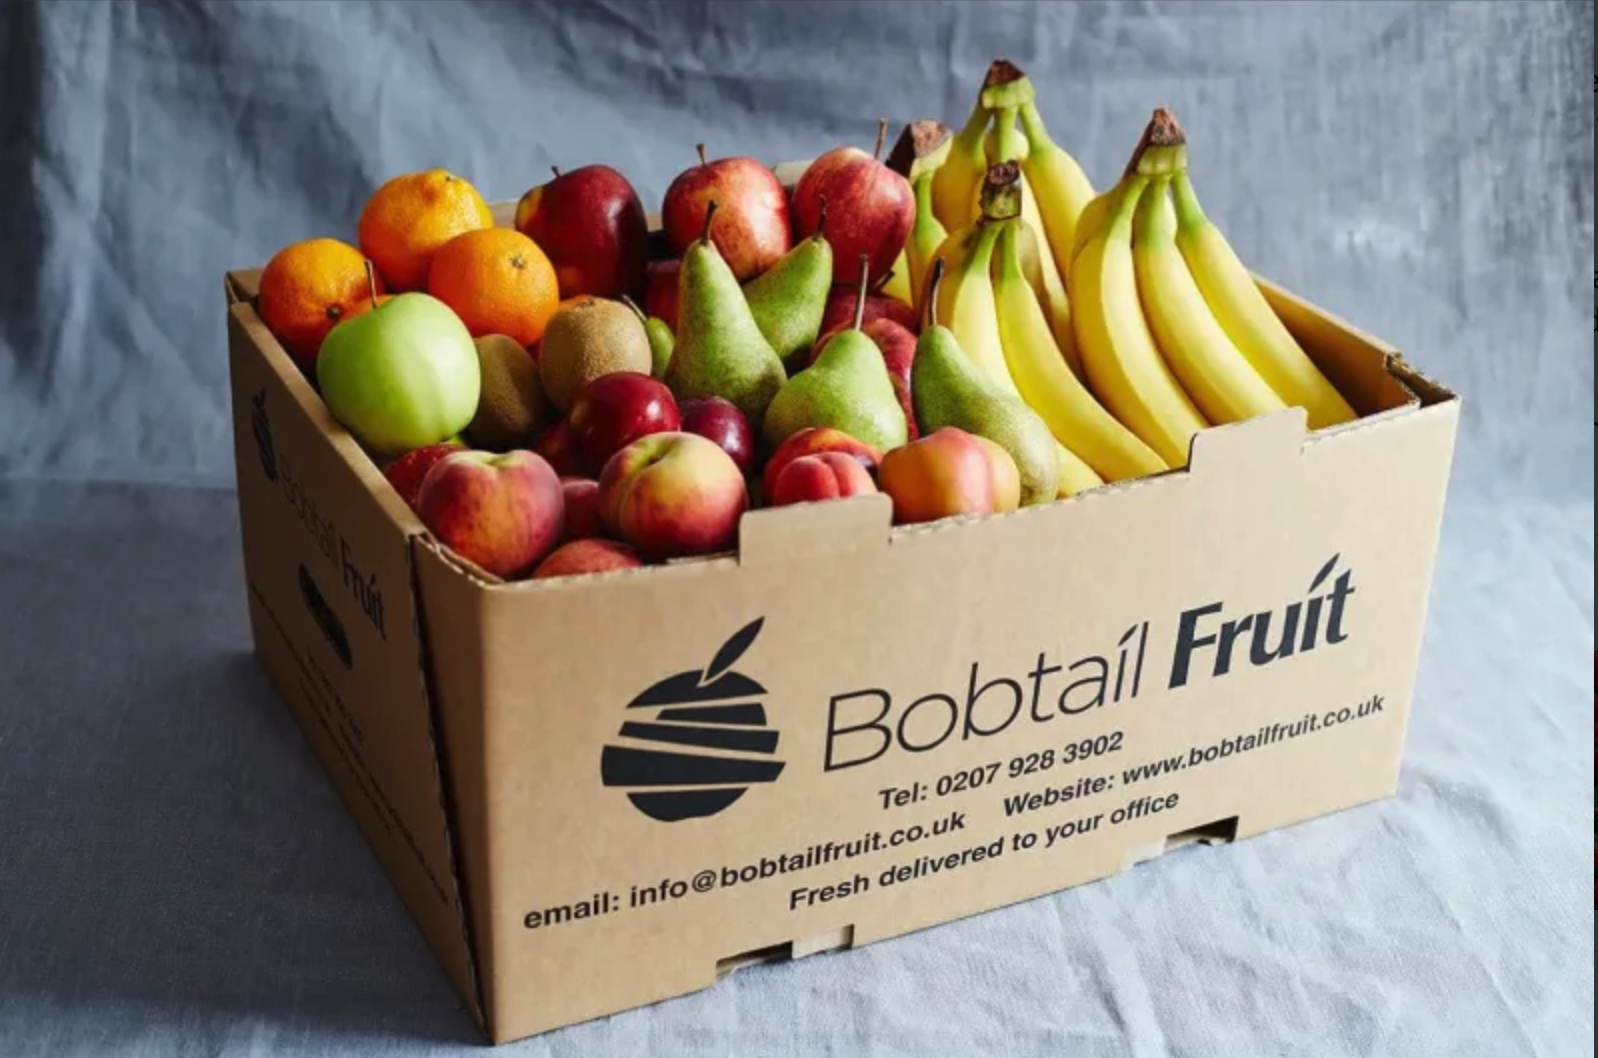 Bobtail Fruit - Started in the Market back in the day and now have distribution company